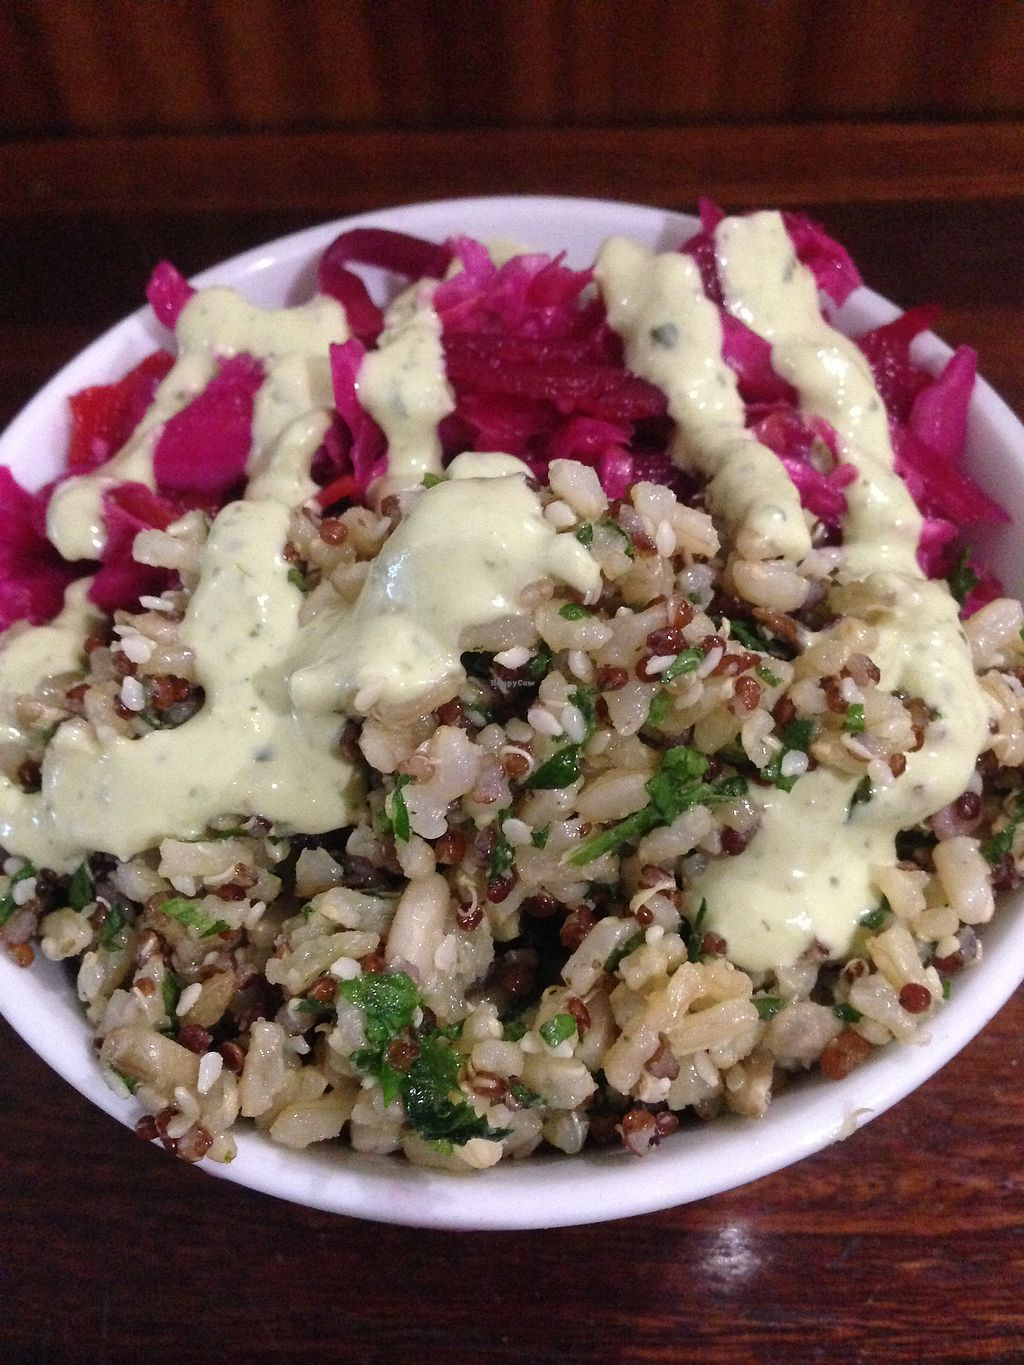 """Photo of Iku Wholefood Kitchen  by <a href=""""/members/profile/2lentilforyou"""">2lentilforyou</a> <br/>Two salads <br/> September 10, 2017  - <a href='/contact/abuse/image/487/302791'>Report</a>"""